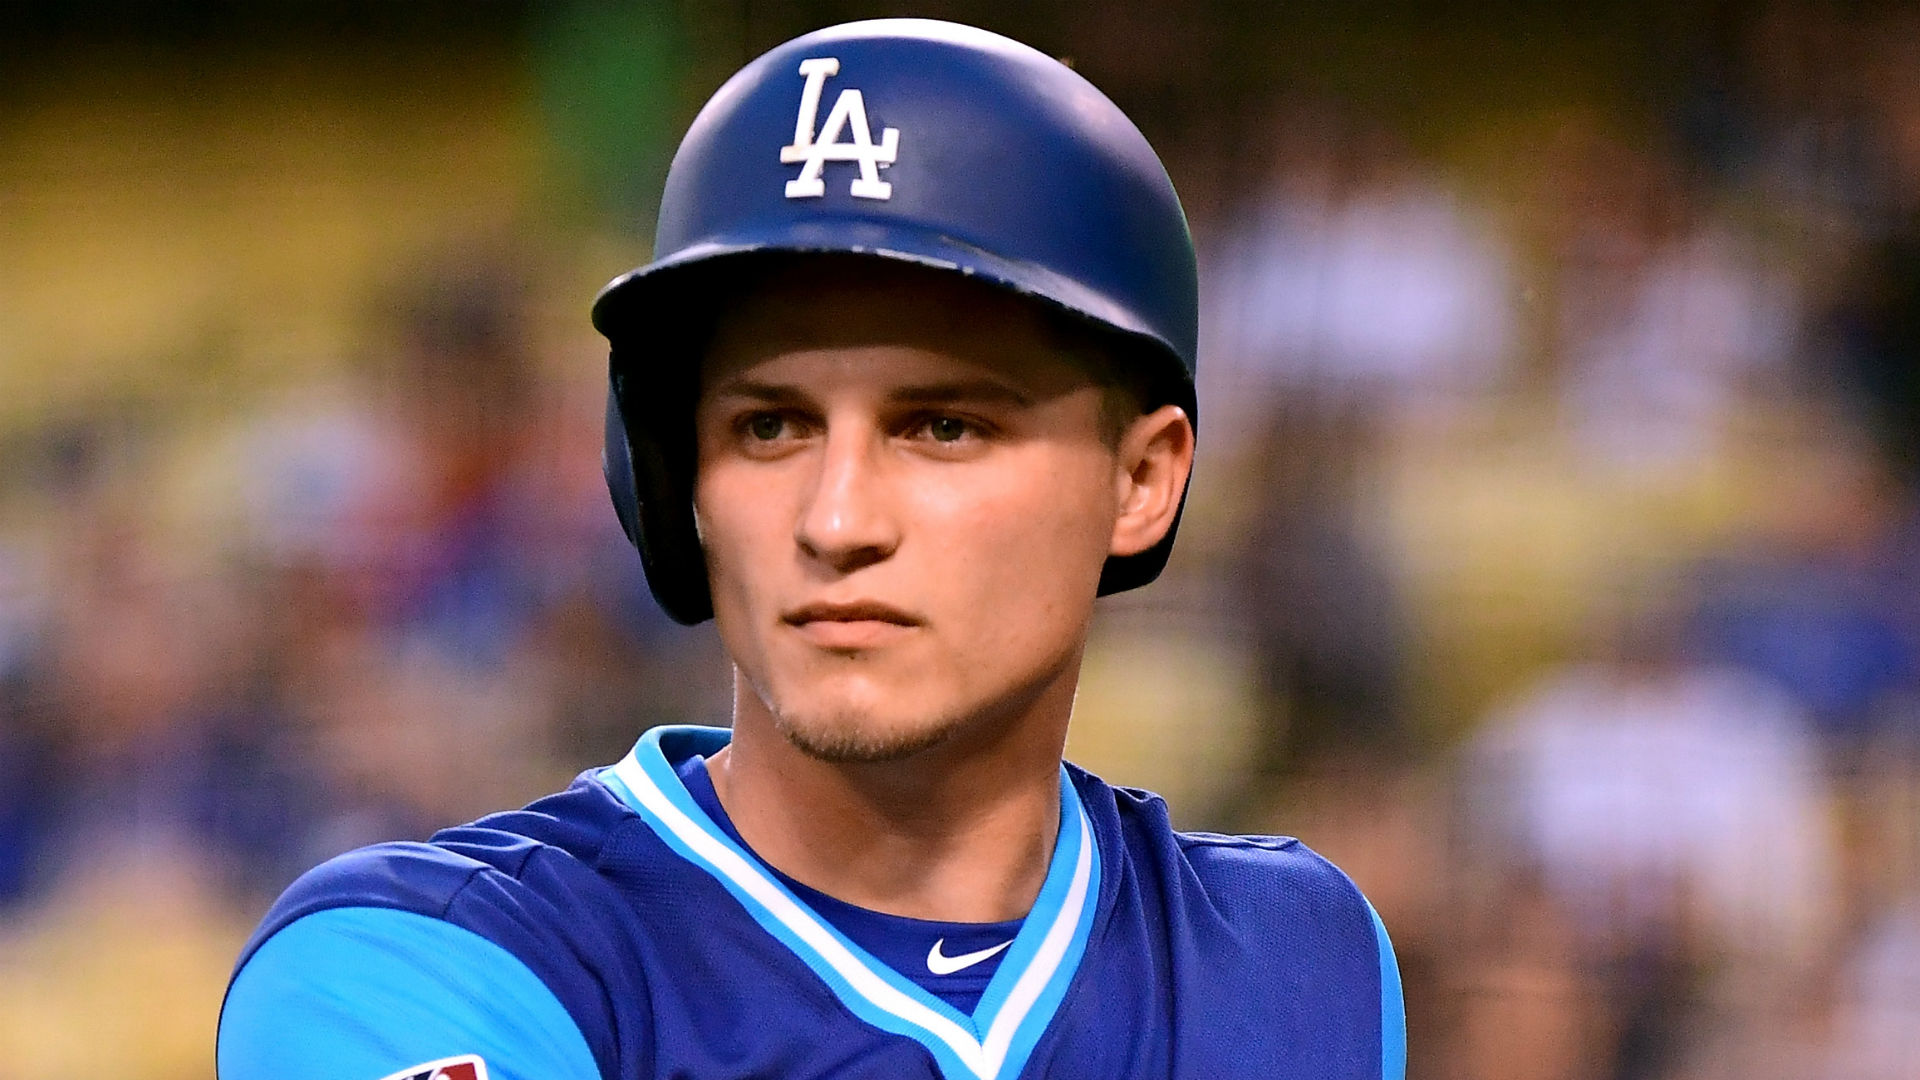 d1e2f21171 Dodgers' Corey Seager (hamstring) could miss 4-6 weeks | Sporting News